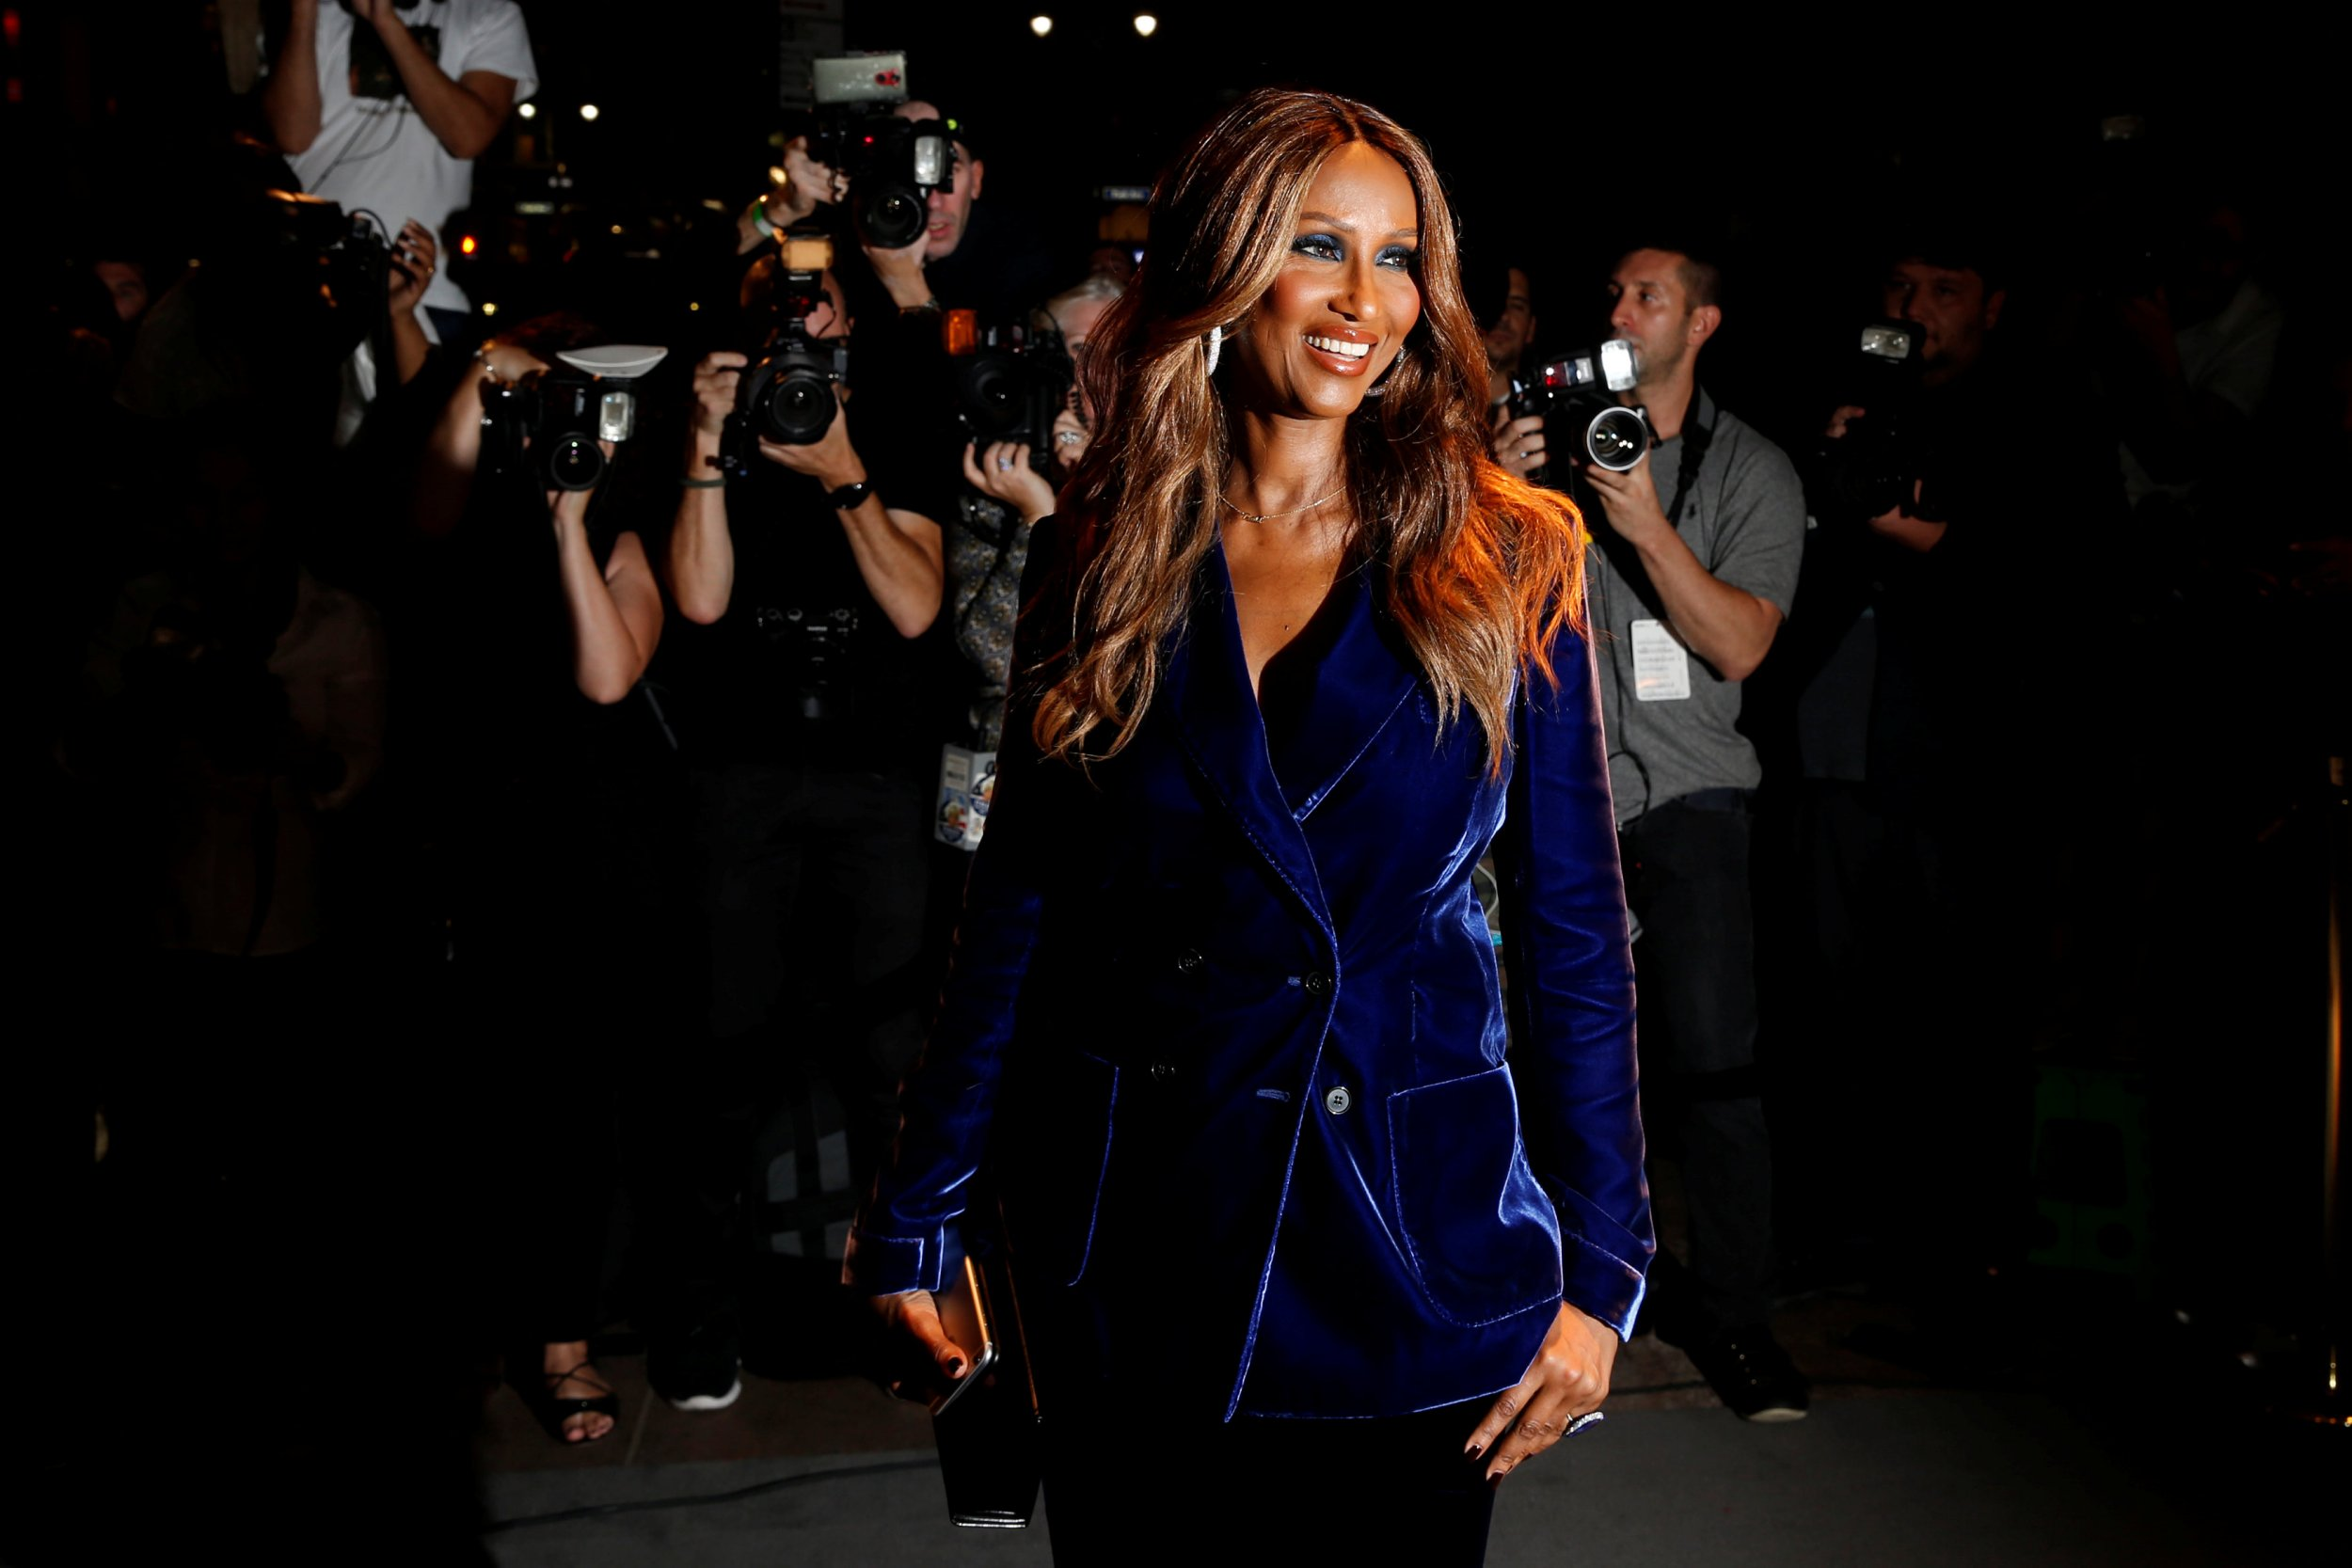 Model Iman arrives to attend a presentation of Tom Ford's Autumn/Winter 2016 collections during New York Fashion Week in the Manhattan borough of New York, U.S., September 7, 2016. REUTERS/Lucas Jackson